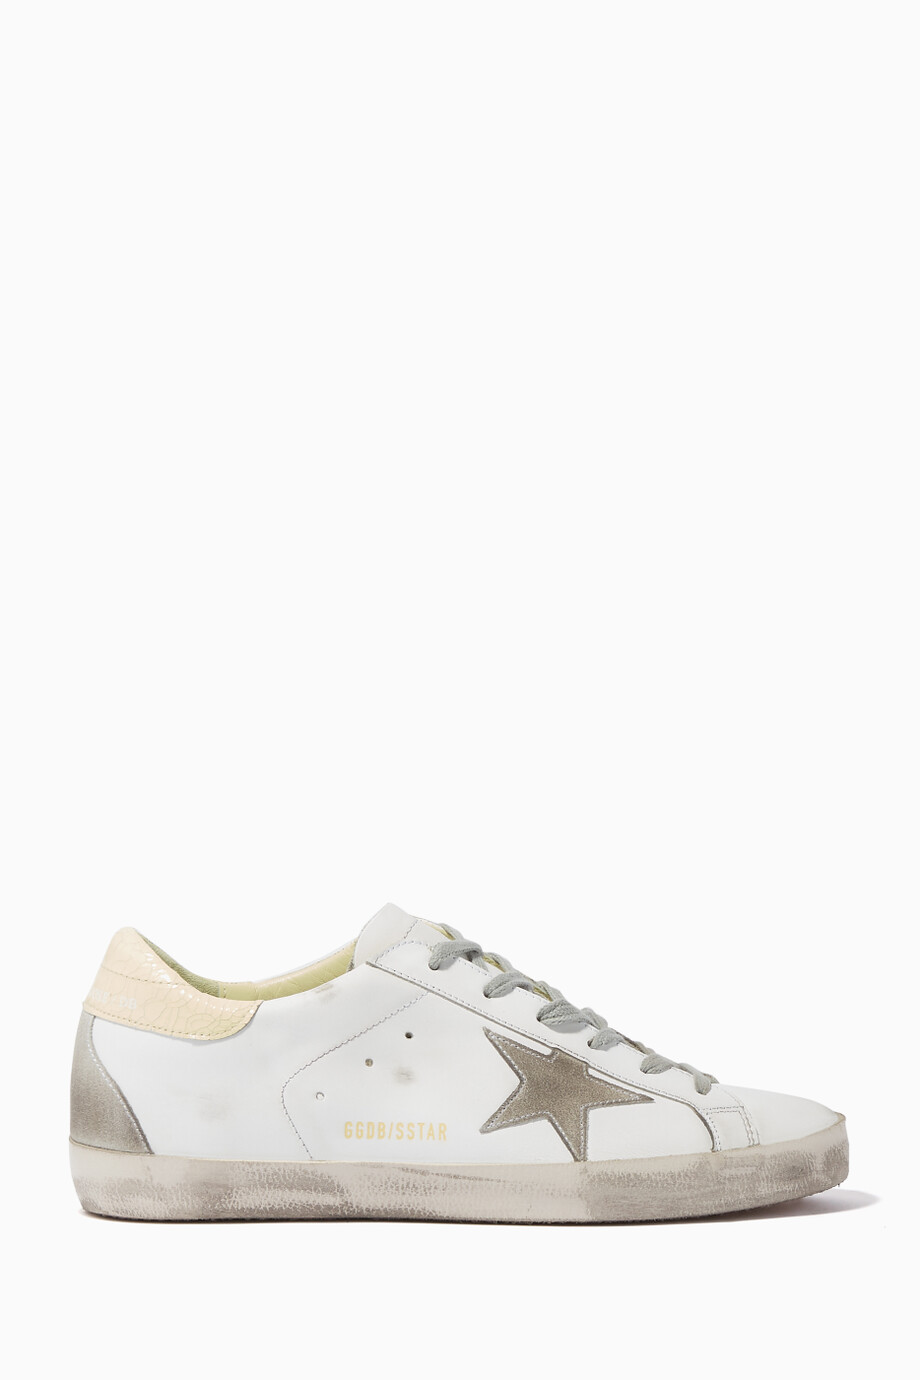 5524d96ba16e Shop Golden Goose Deluxe Brand White White Low-Top Superstar ...